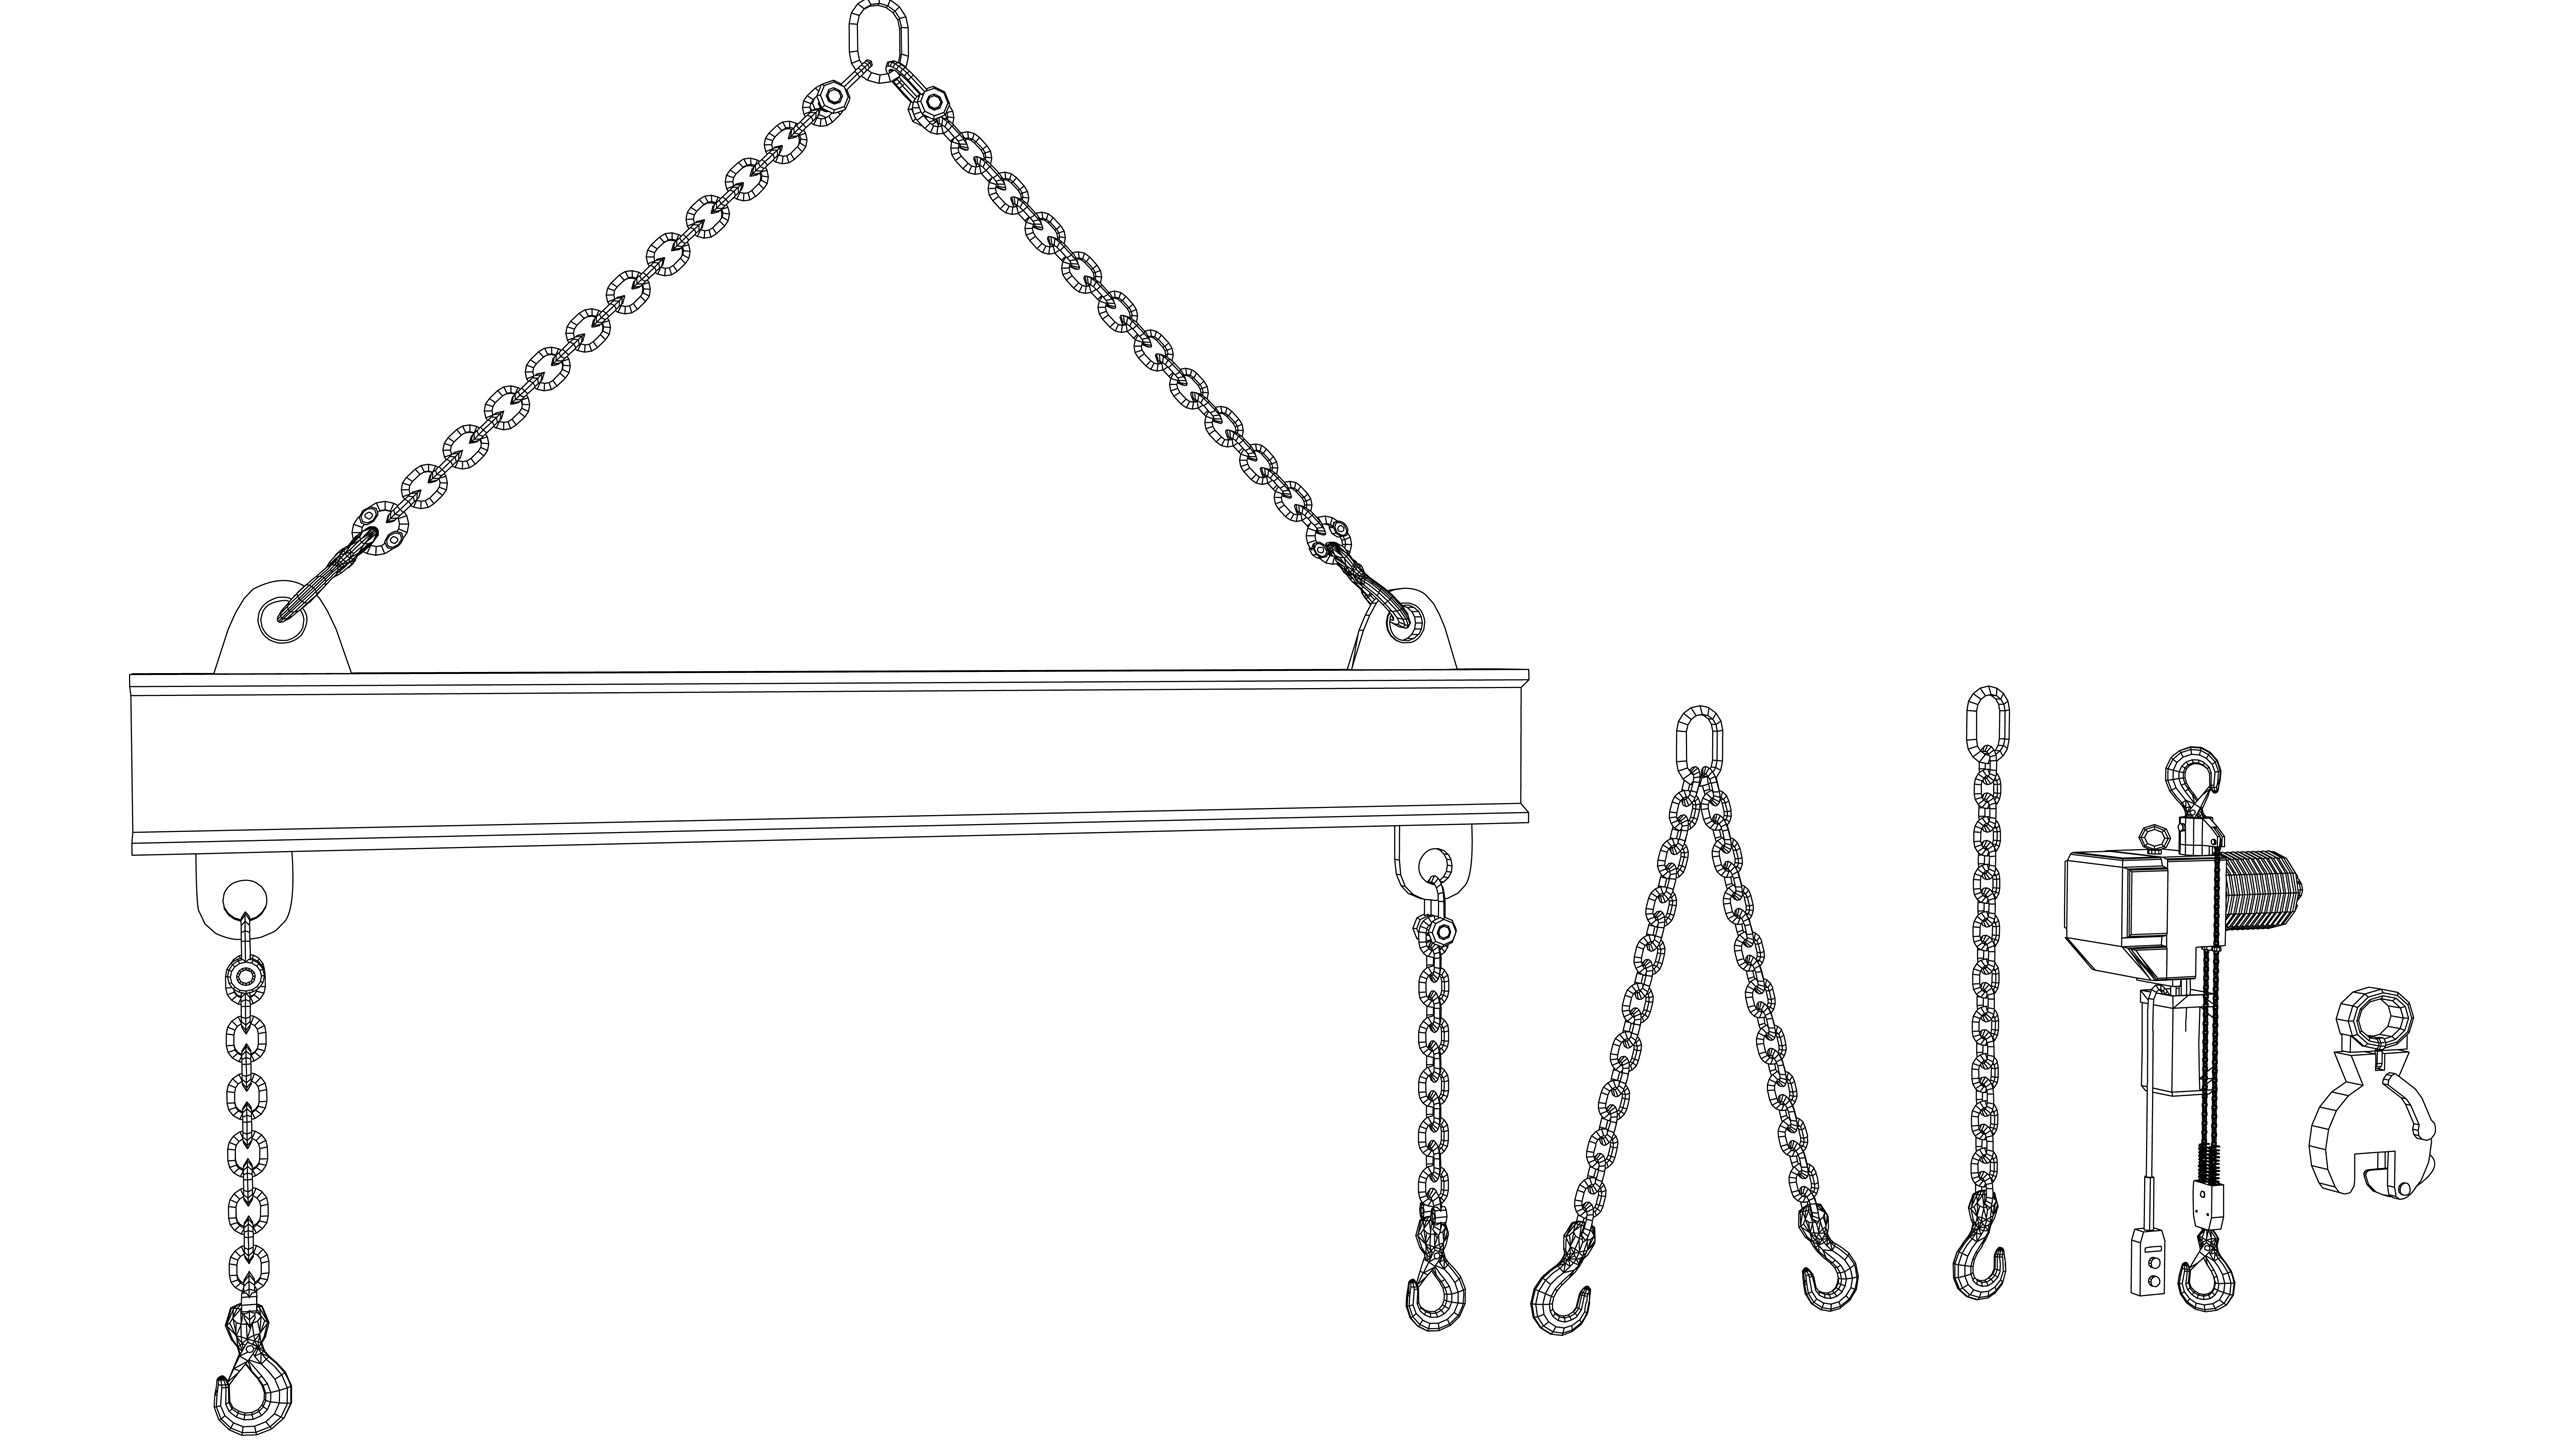 Vector Image: Accessories for lifting - lifting tackle